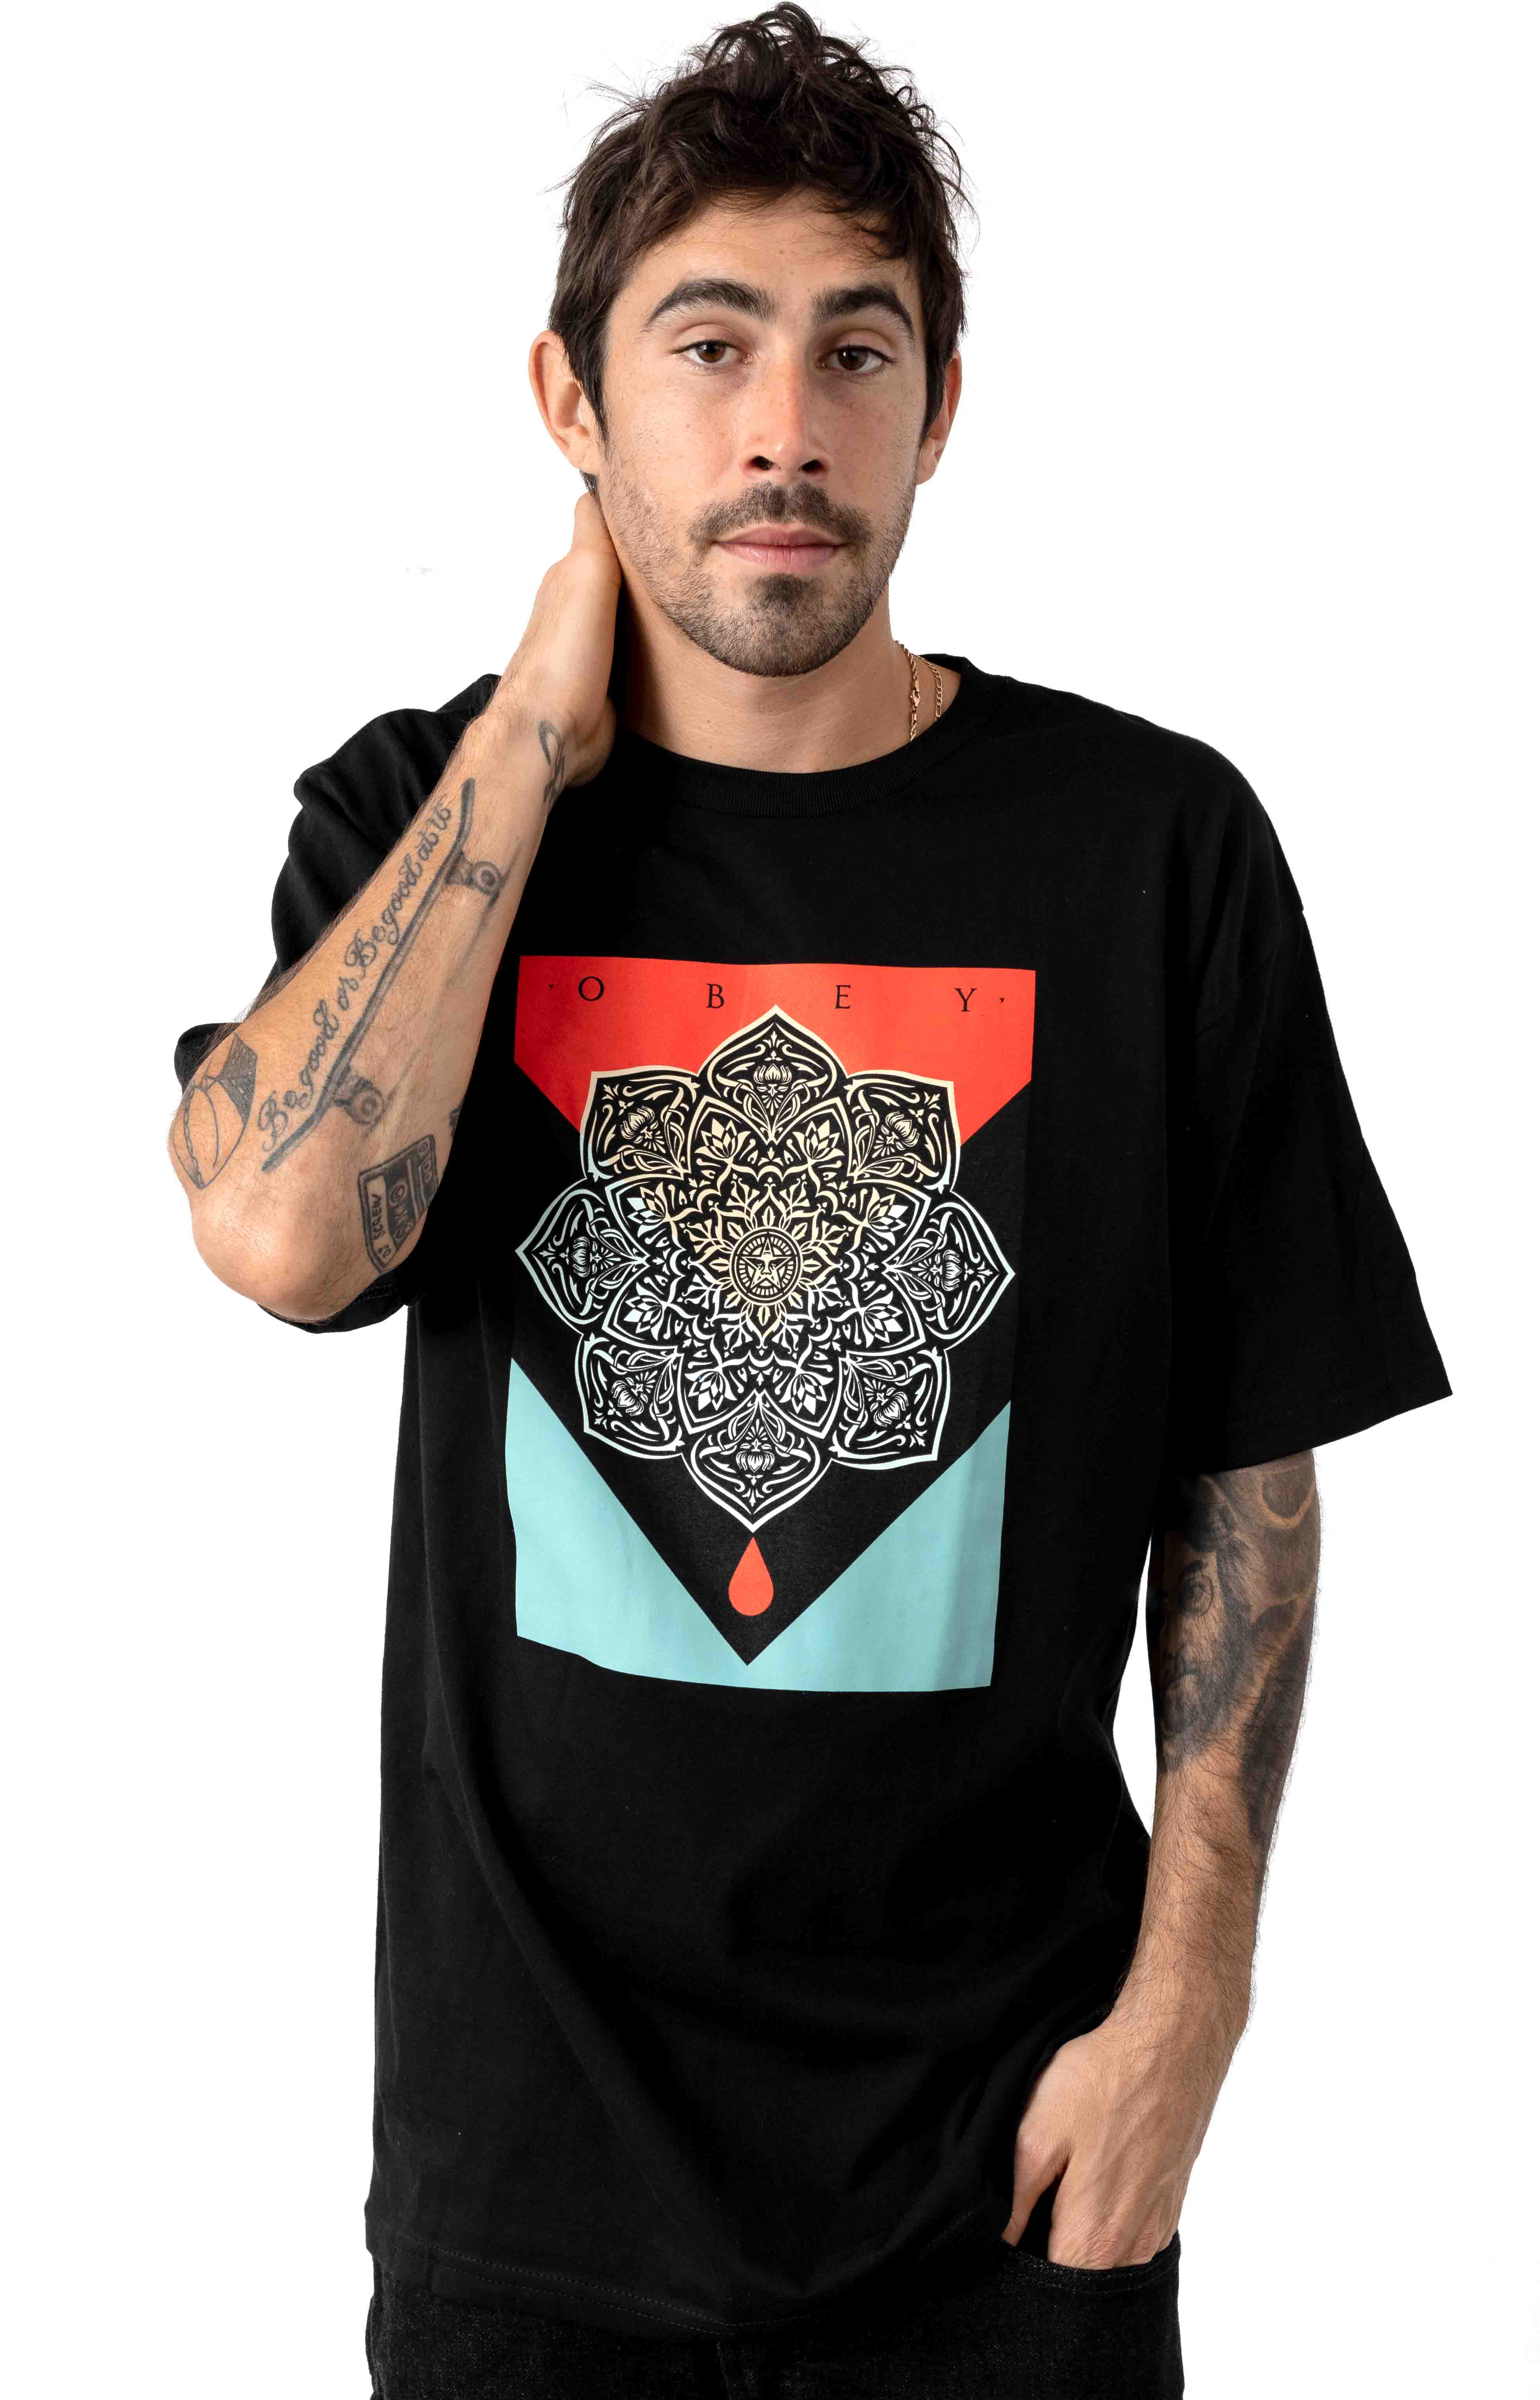 Obey Blood & Oil Mandala T-Shirt - Black